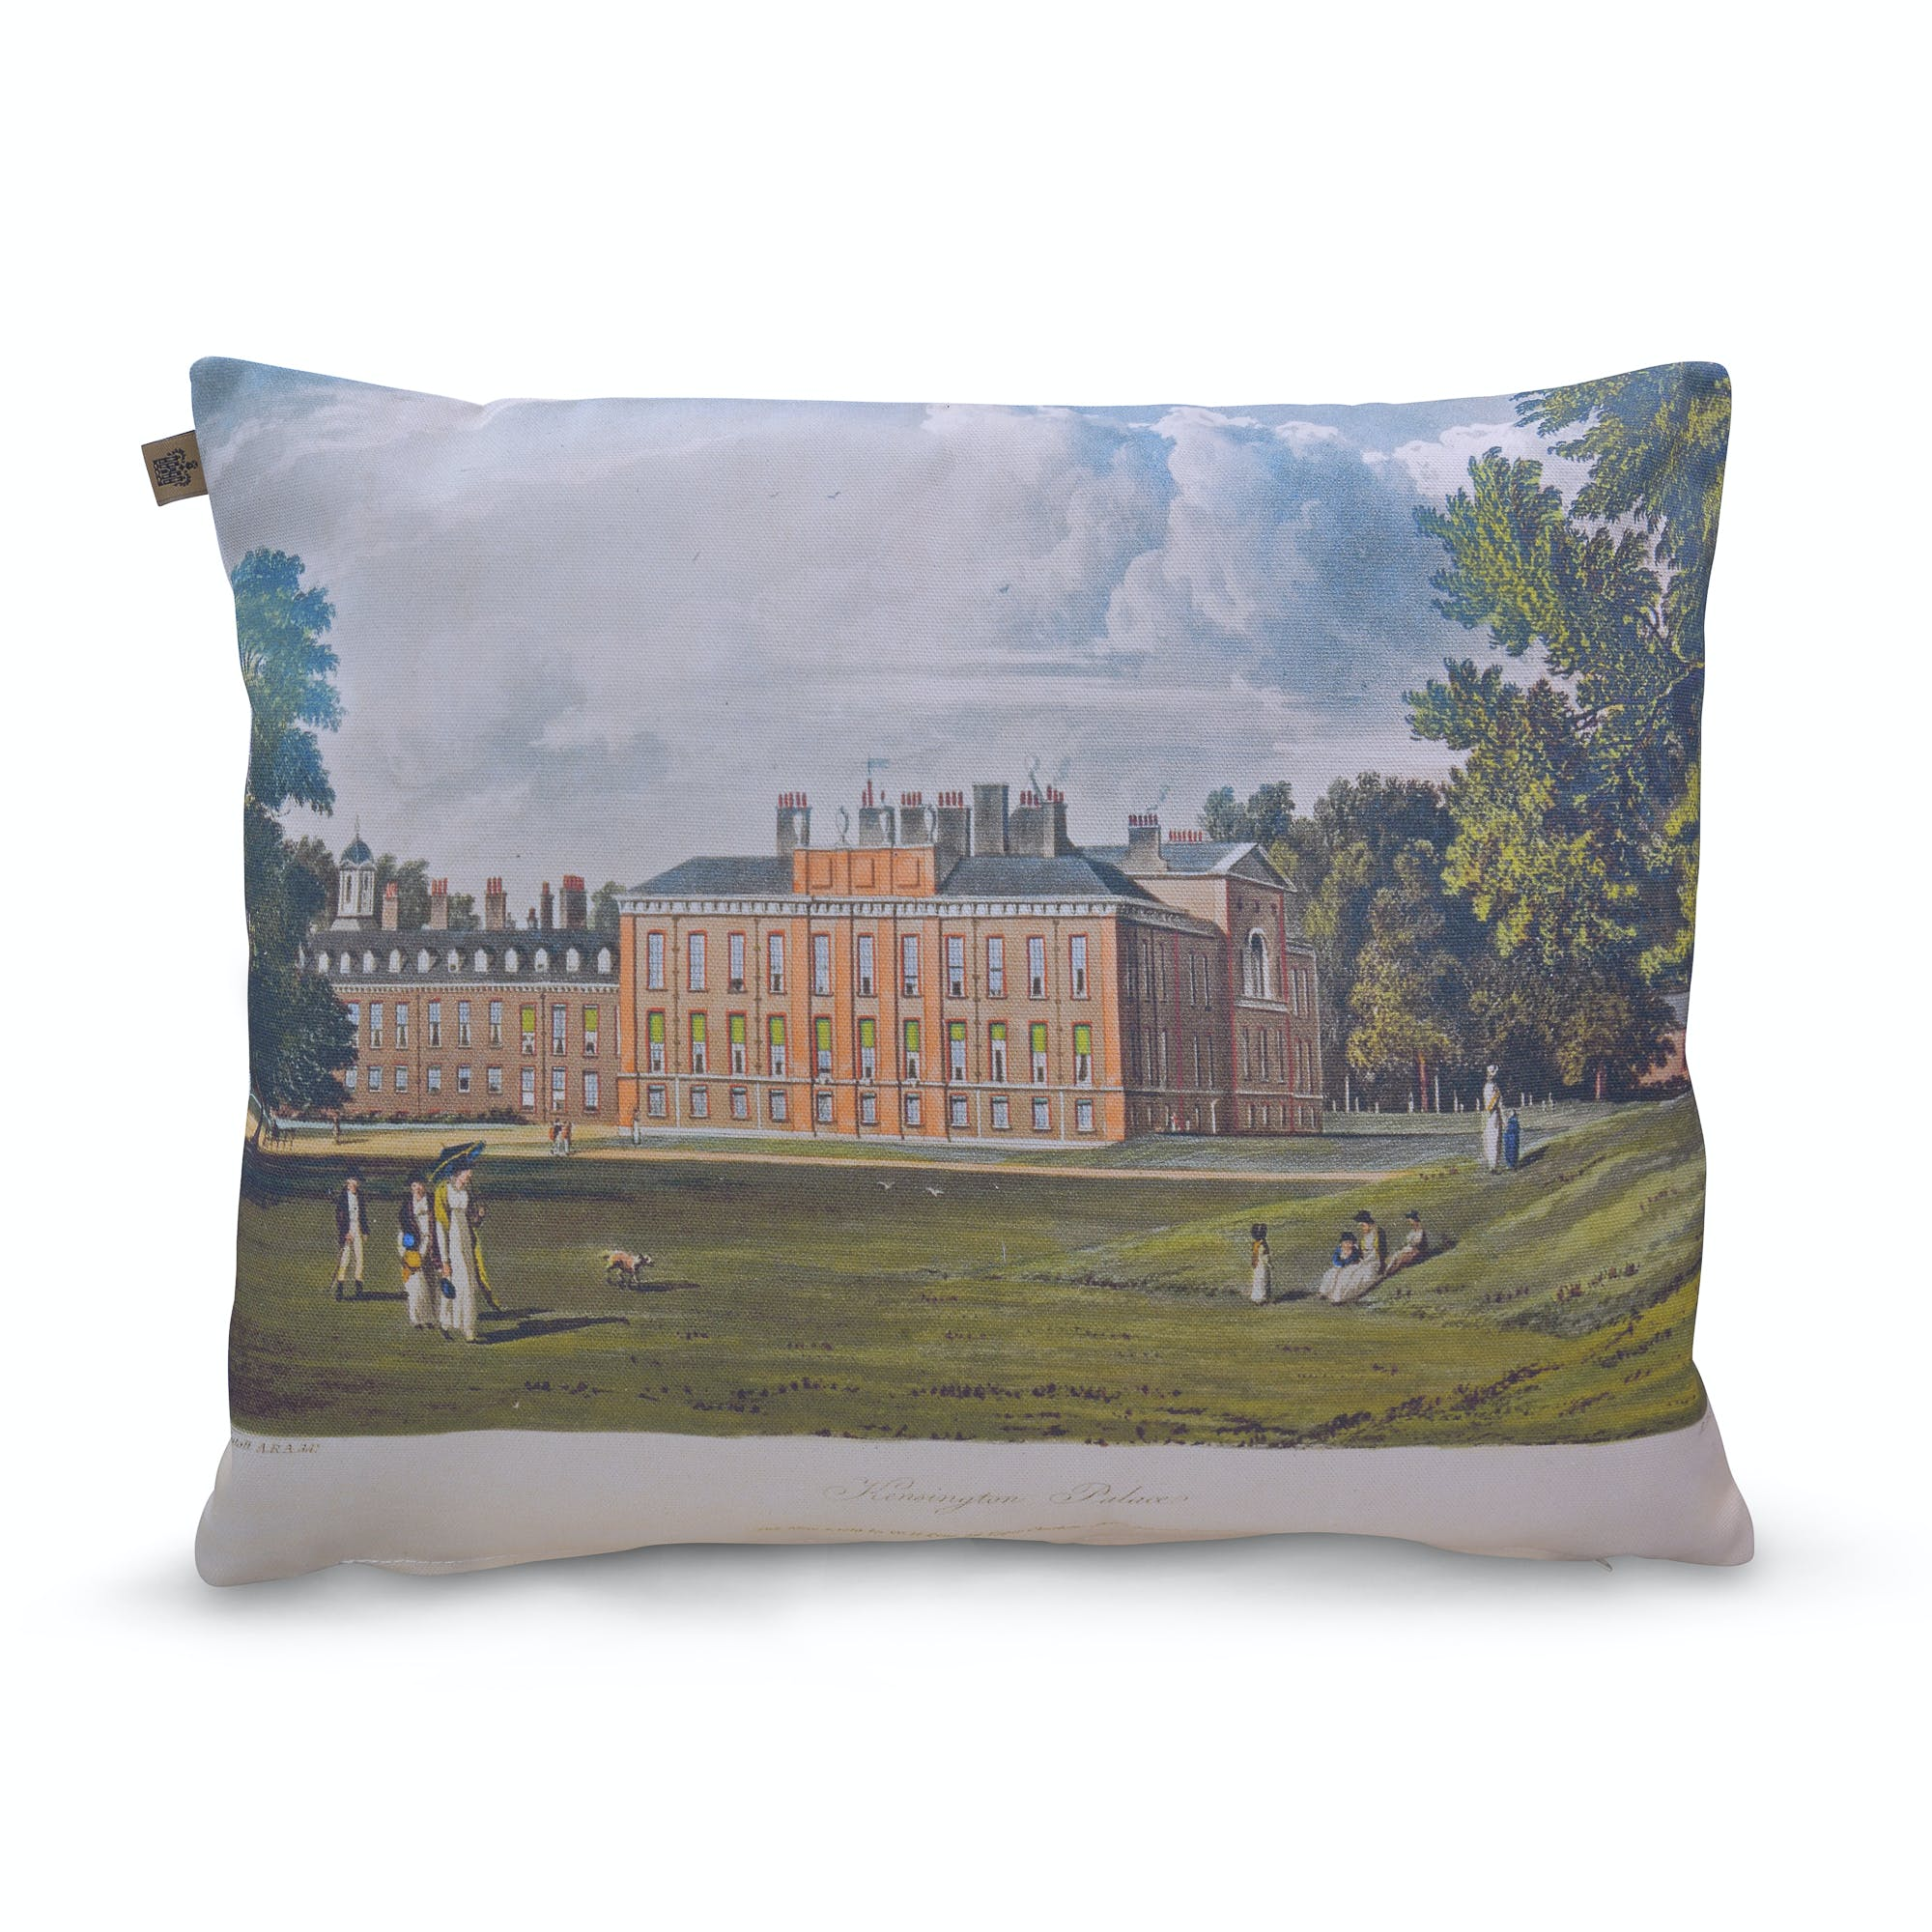 This beautiful cushion features a vintage print of Kensington Palace, the royal residence of William and Mary.